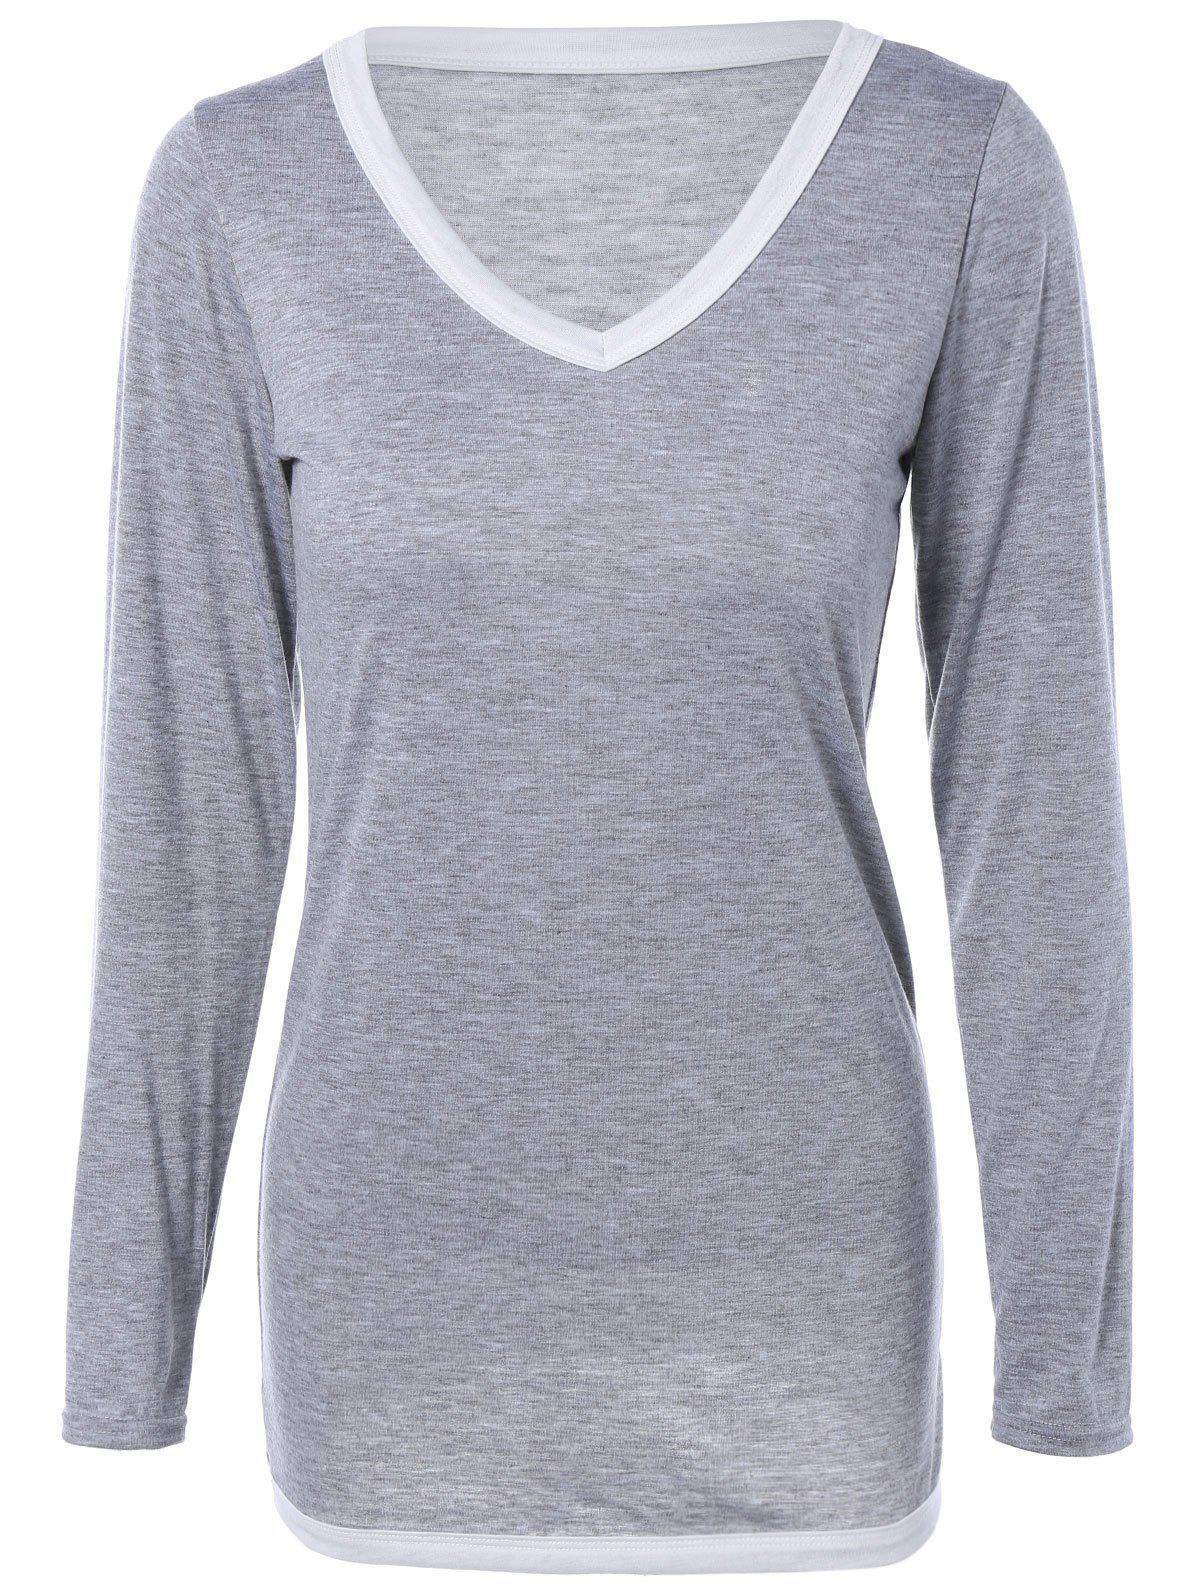 Contrast Trim V-Neck Long Sleeve T-Shirt - GRAY L